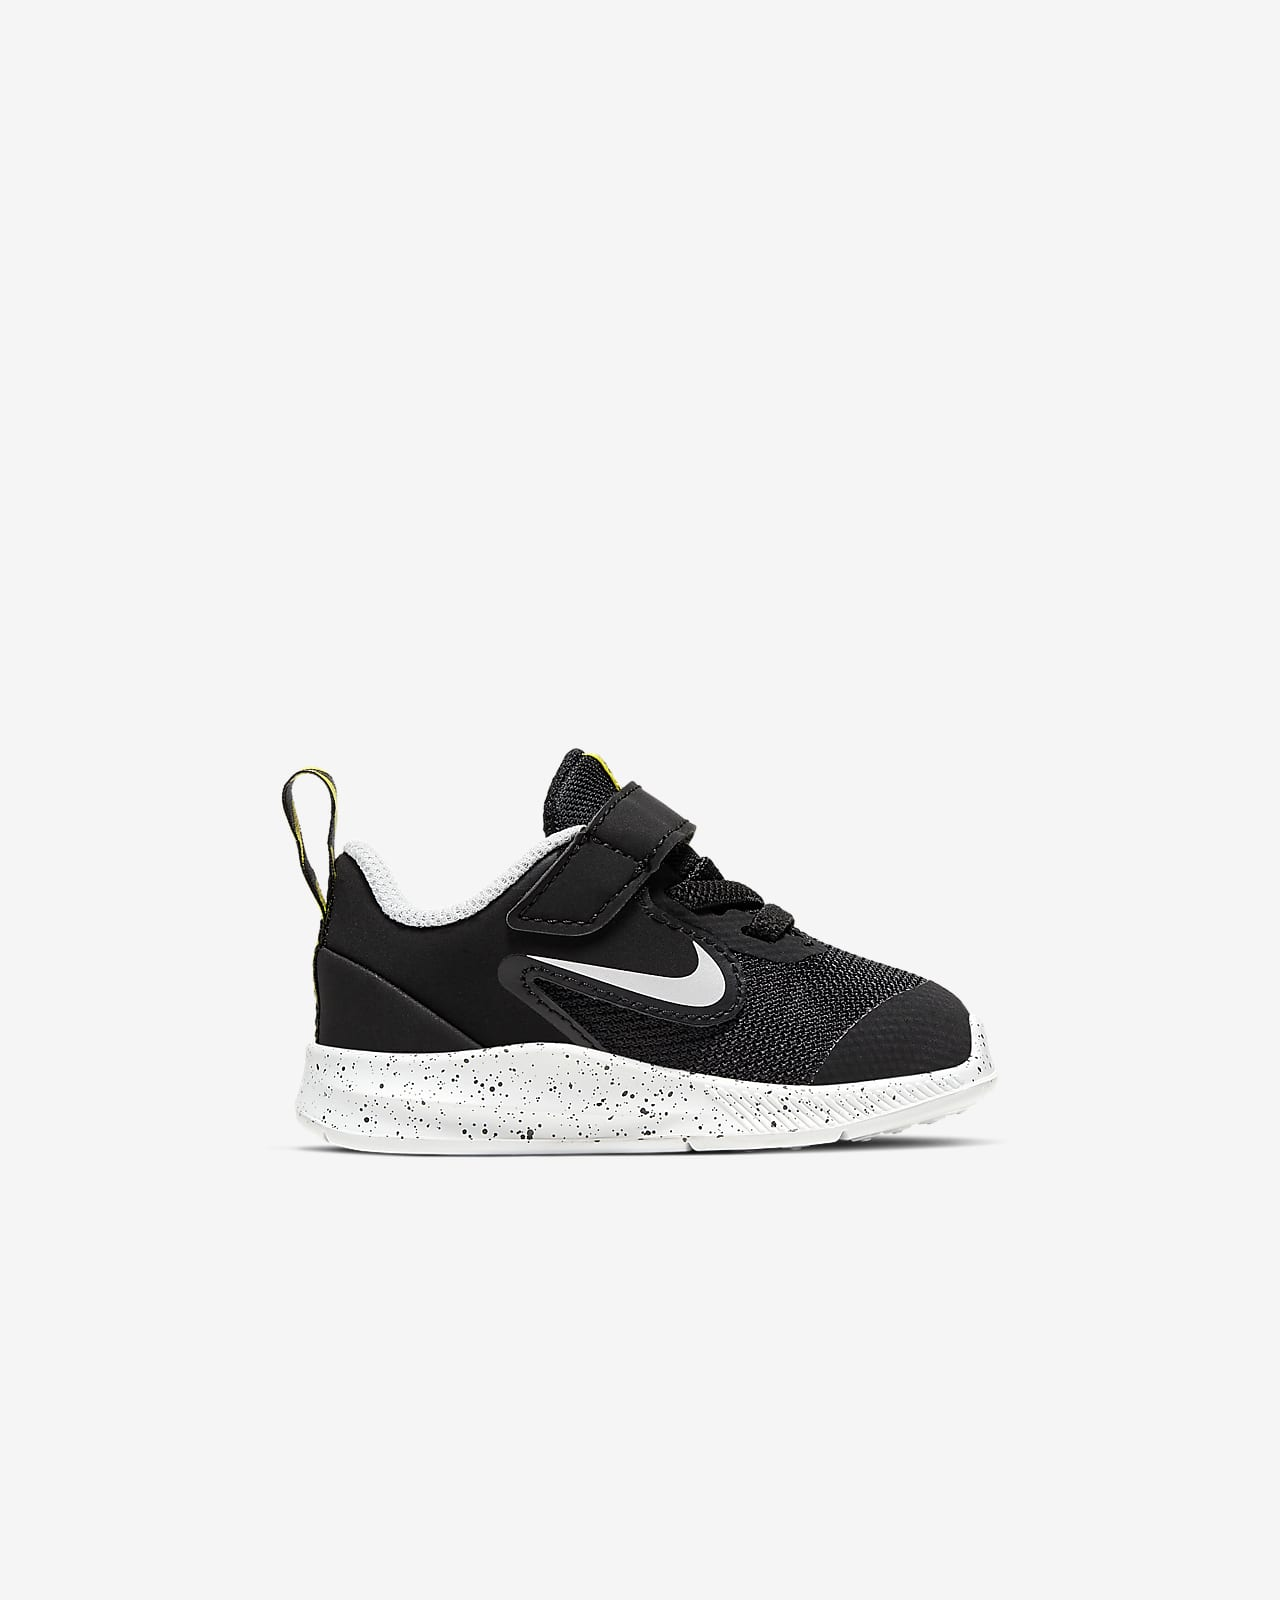 Nike Downshifter 9 RW Infant/Toddler